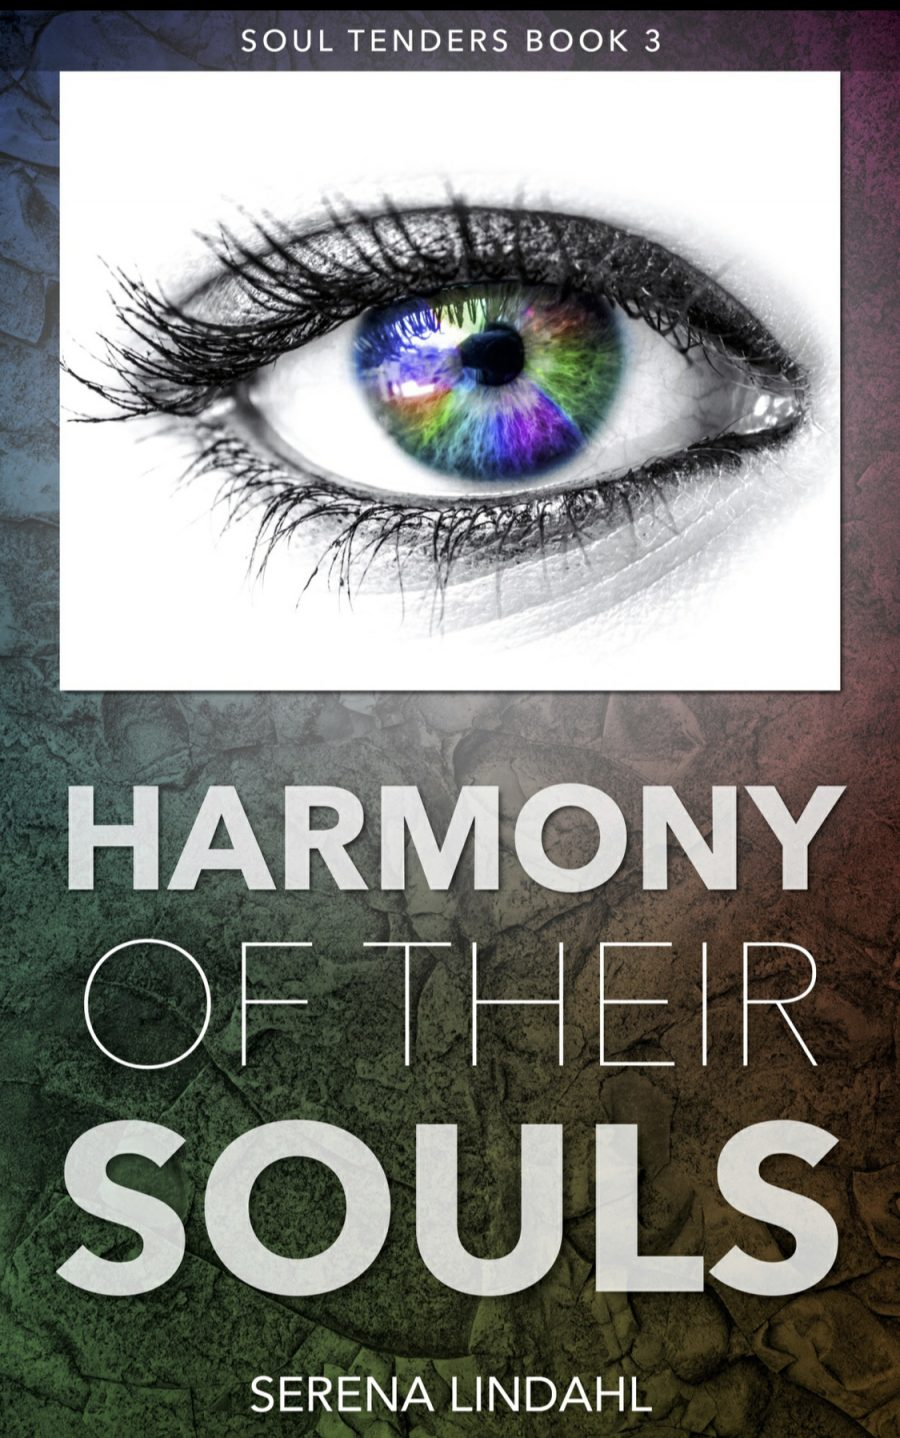 Harmony of Their Souls (Soul Tenders - Book 3) by Serena Lindahl - A Book Review #BookReview #Fantasy #SlowBurn #RH #SeriesComplete #KindleUnlimited #KU